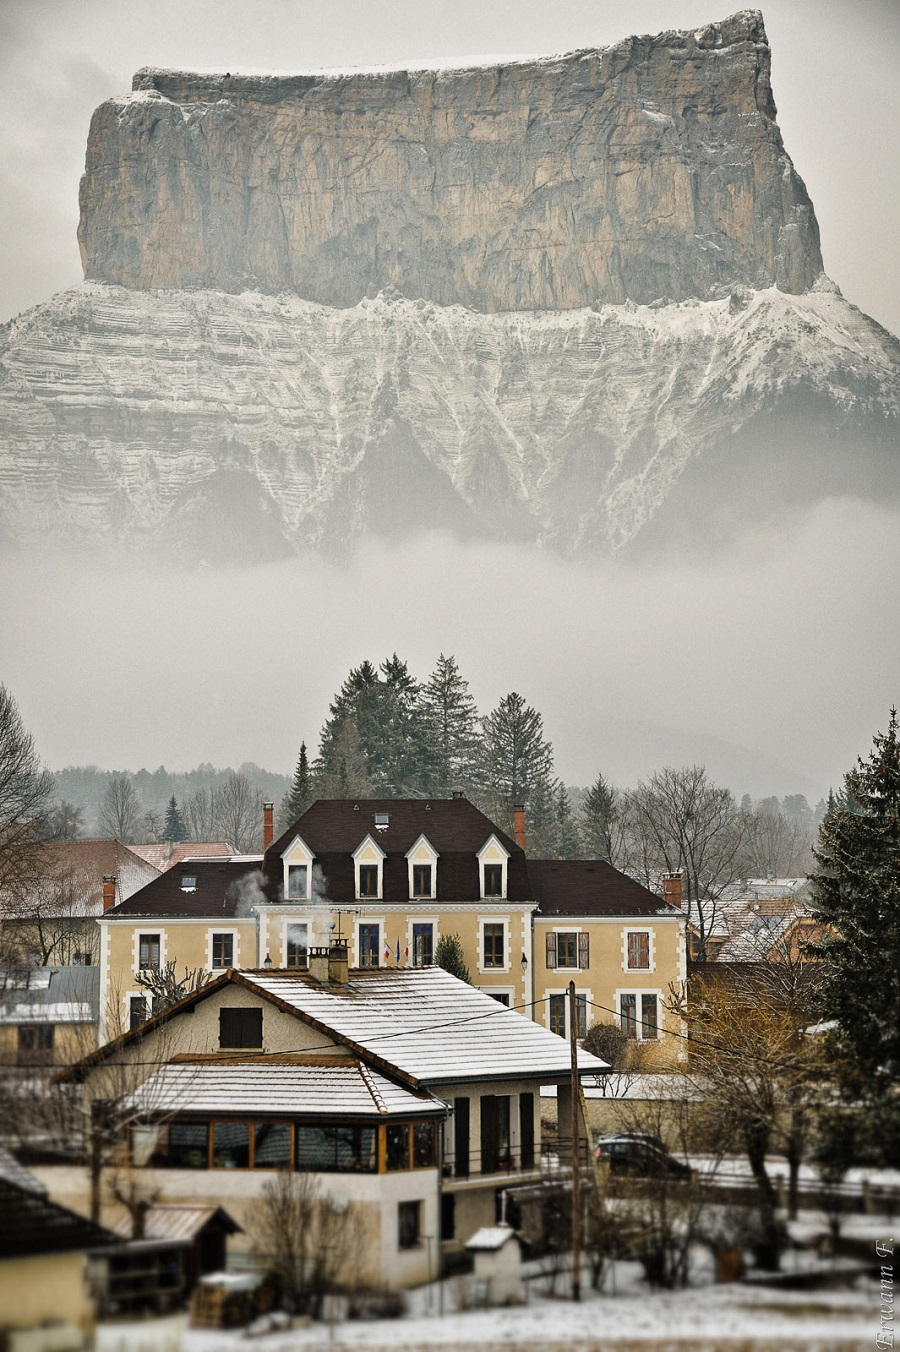 Chichilianne – Rhone Alpes, France